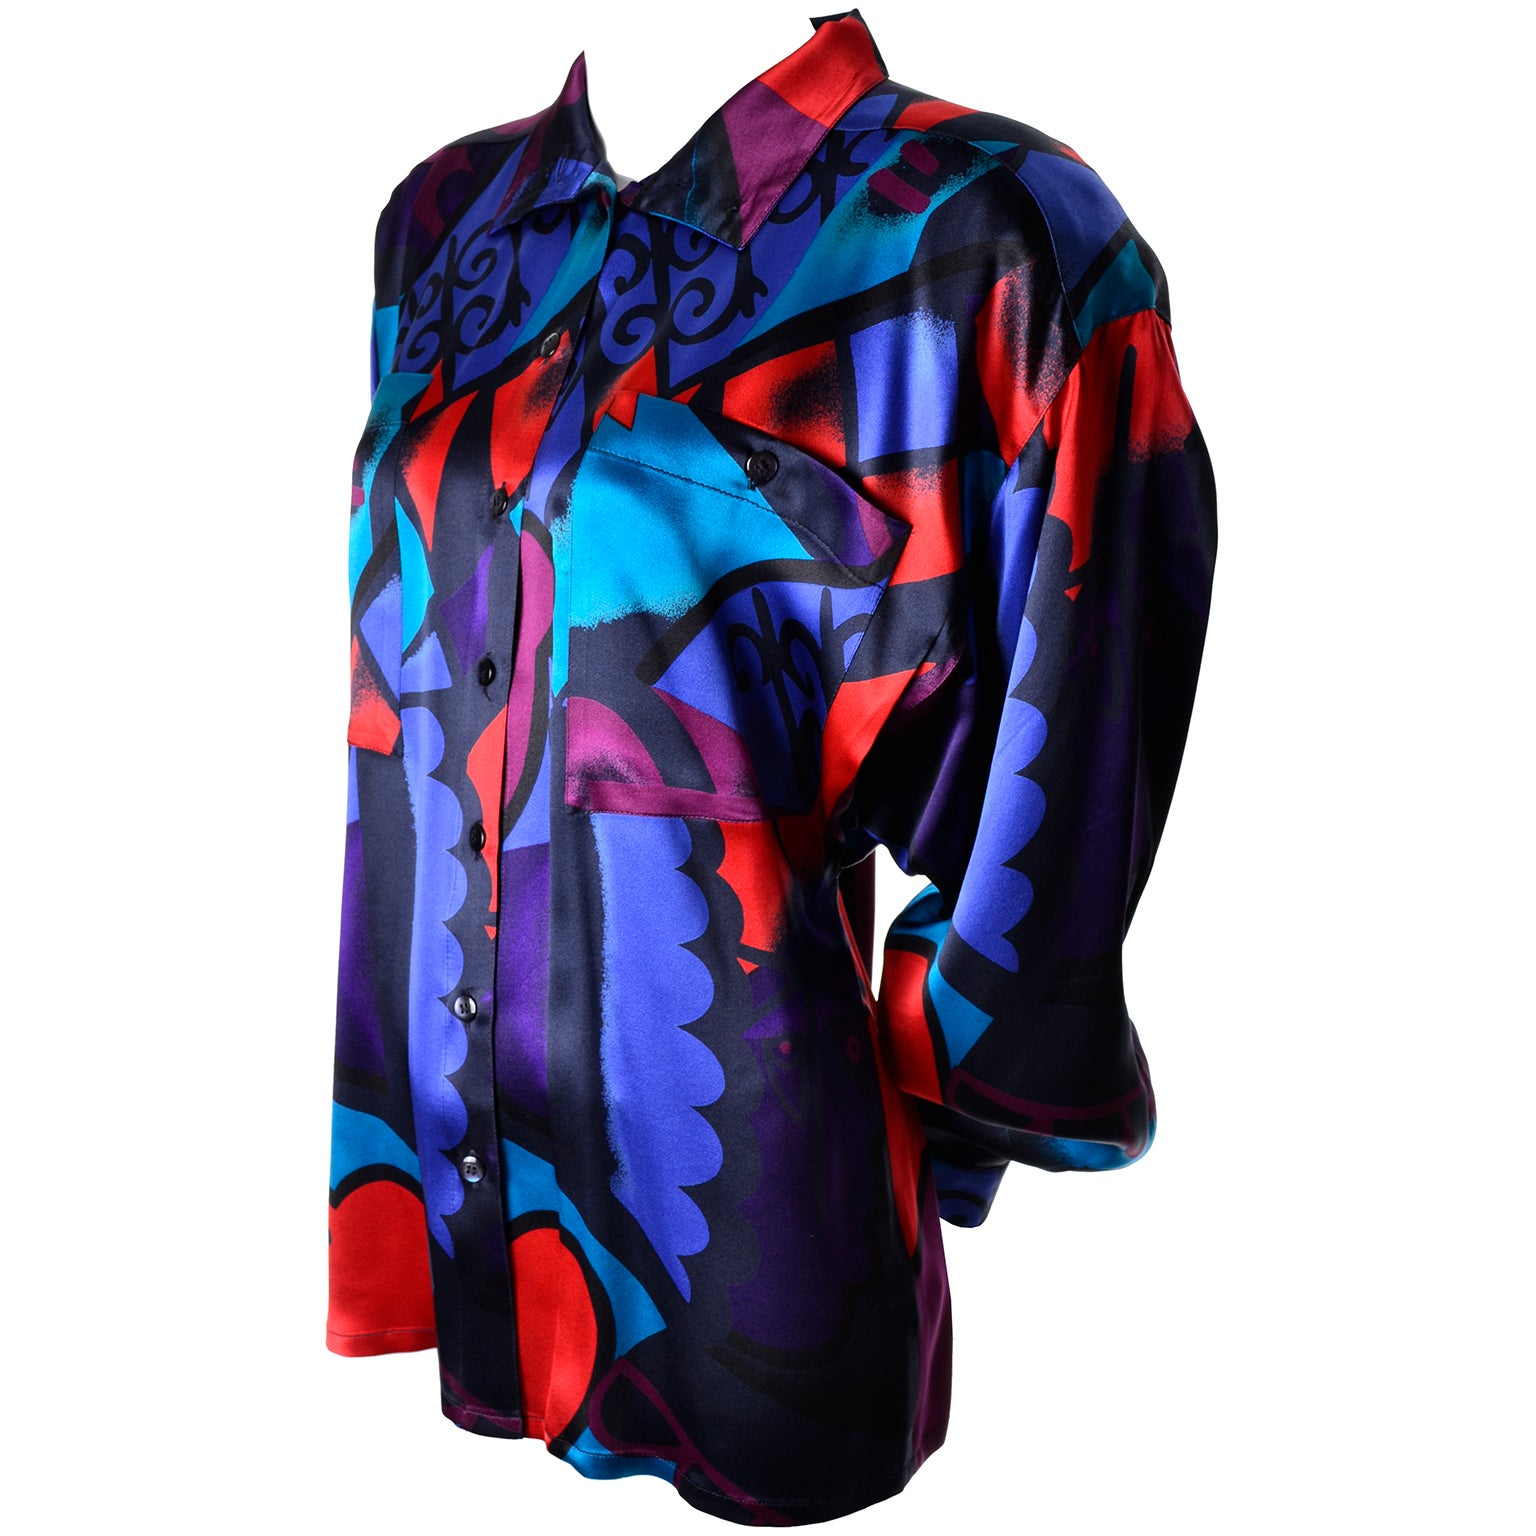 40c32790101d1 1980s Abstract Vintage Escada Blouse in Silk Designed By Margaretha Ley 8 10  at 1stdibs